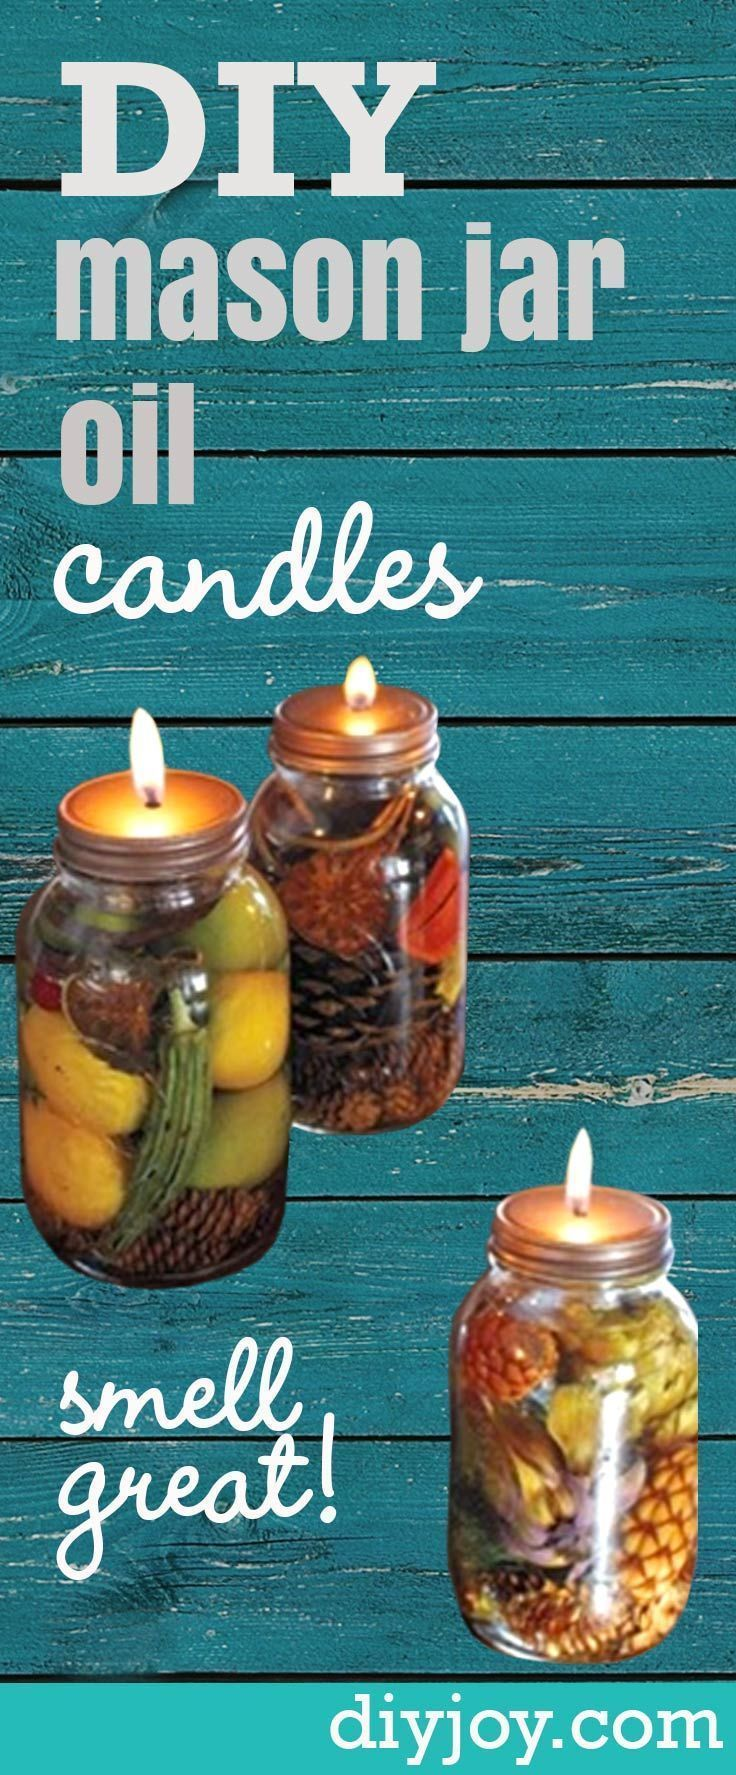 Diy mason jar oil candles rustic home decor projects for Diy candle crafts